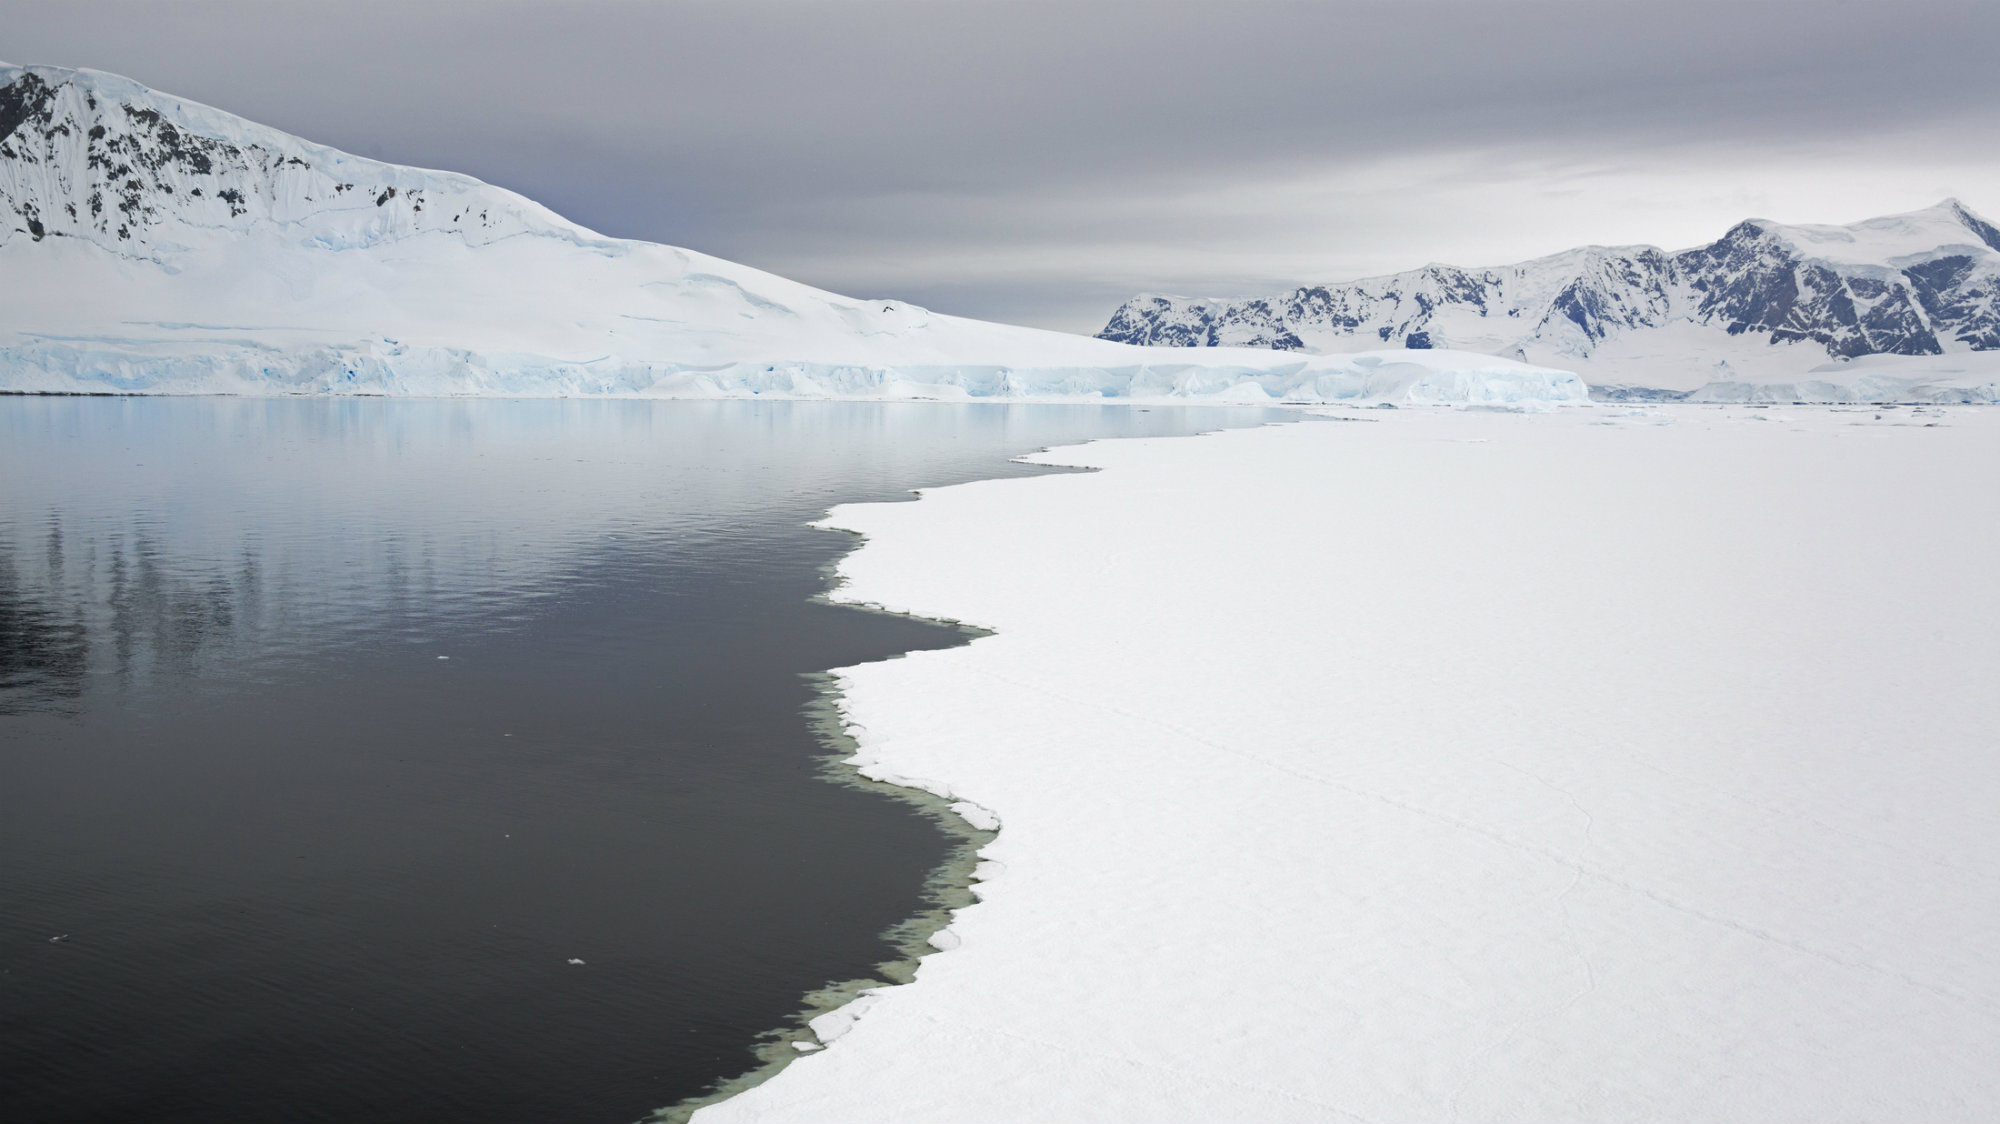 Antarctica ice melting at alarming rate